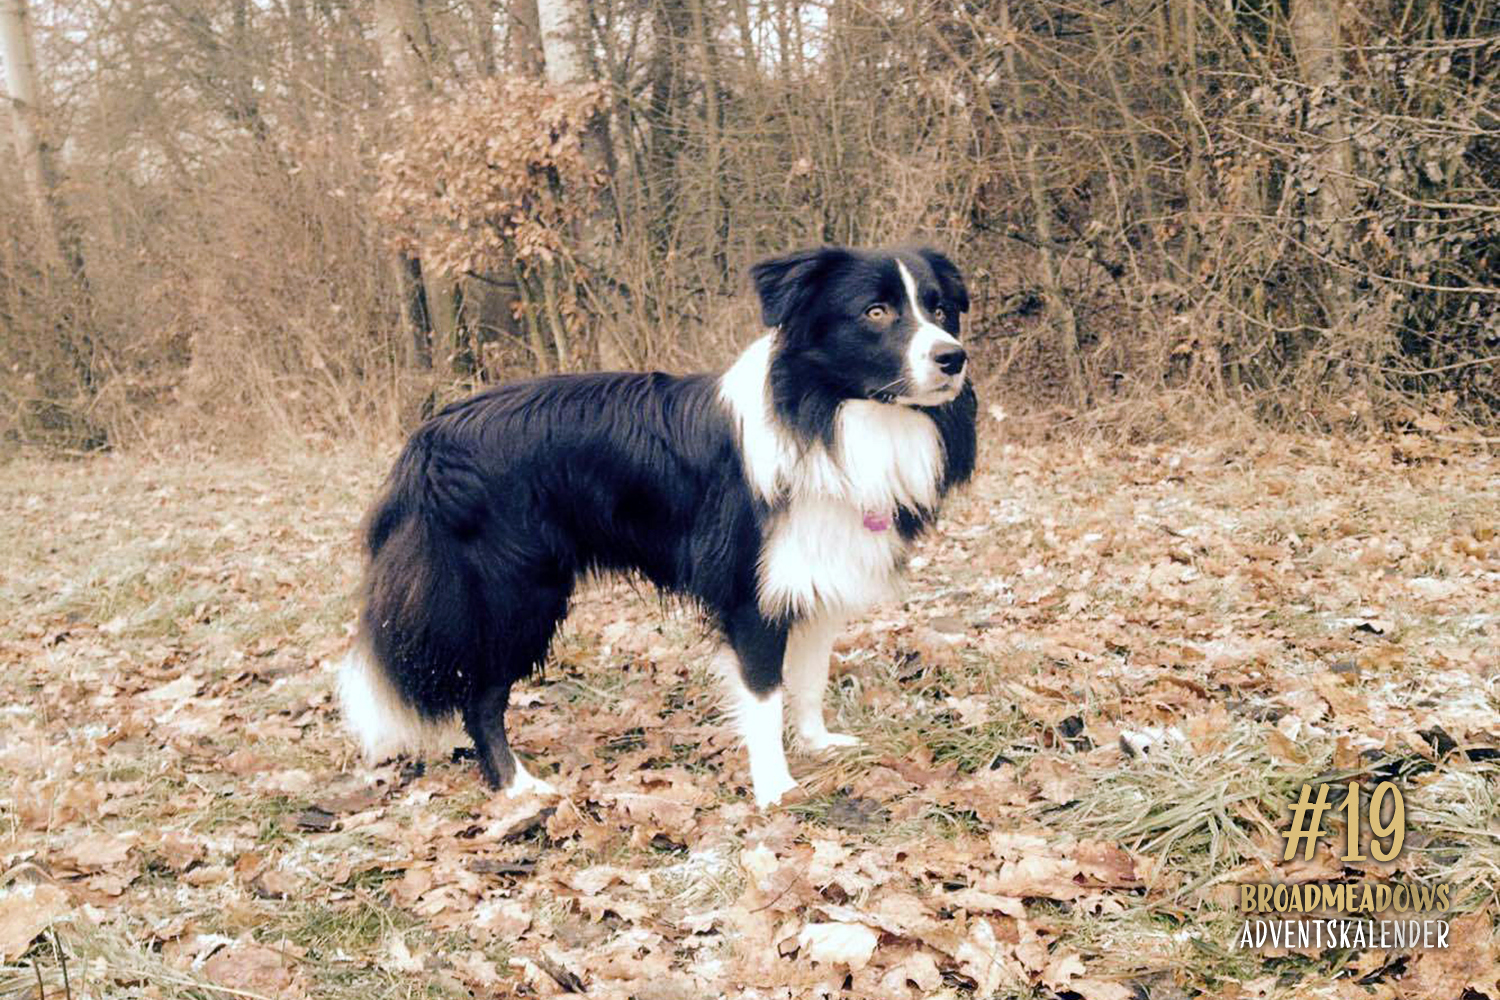 Broadmeadows Border Collies Adventskalender – No. 19: »Zeppo« (Broadmeadows David Bowie)